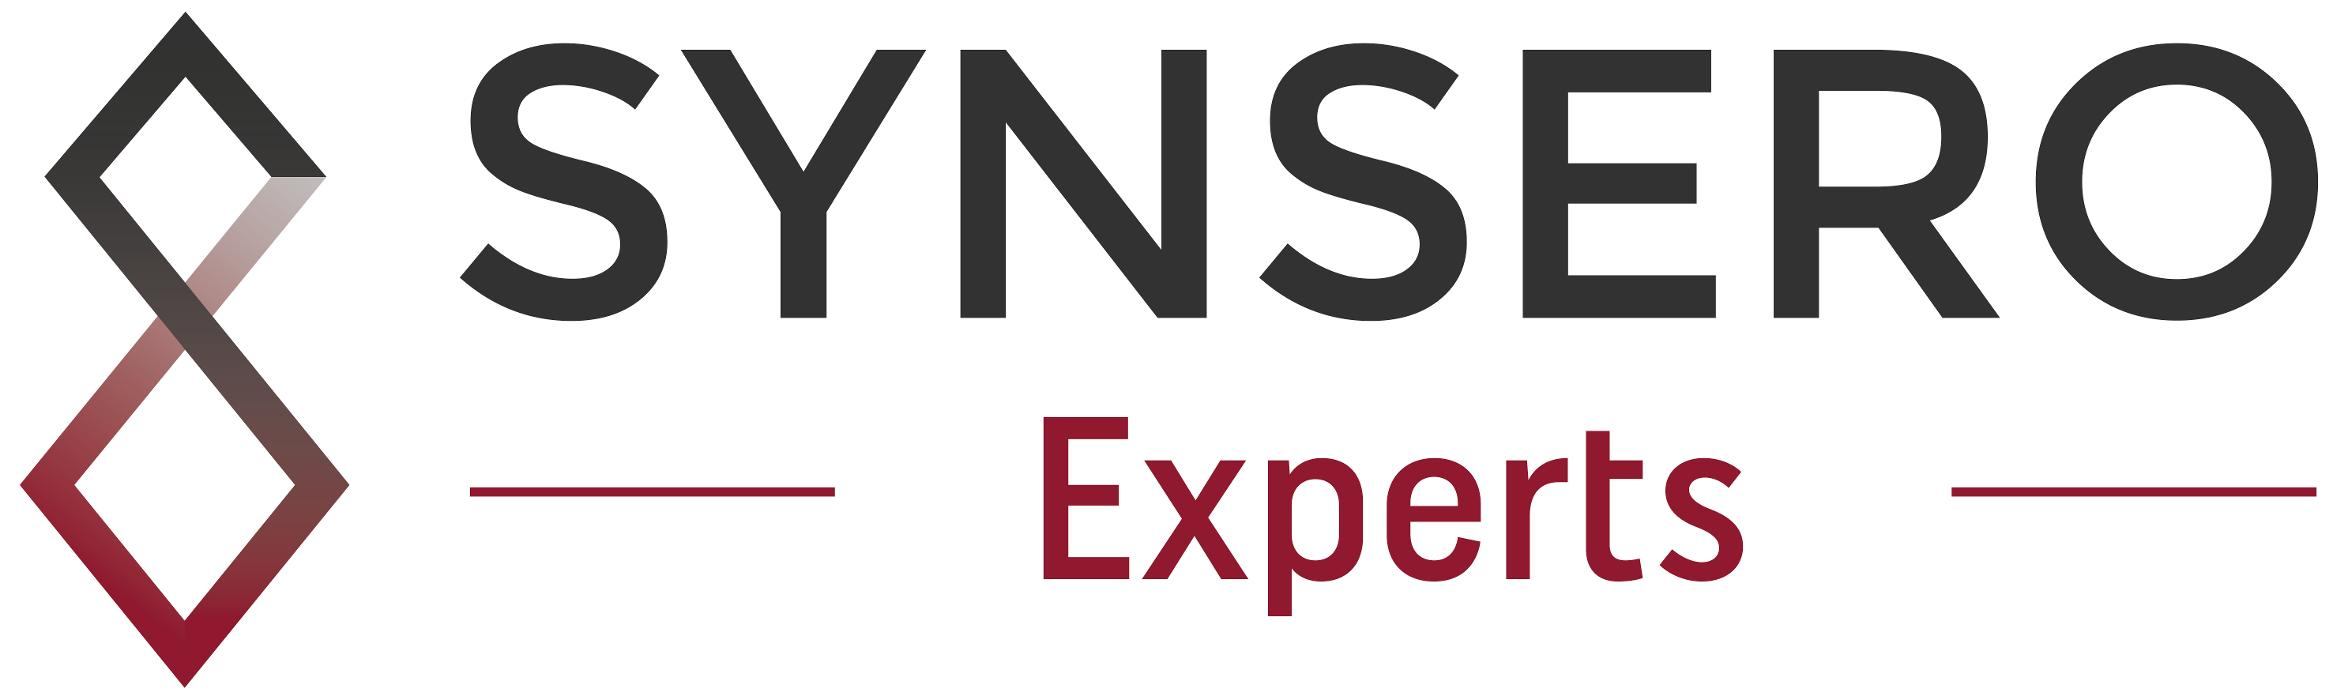 SYNSERO Experts GmbH